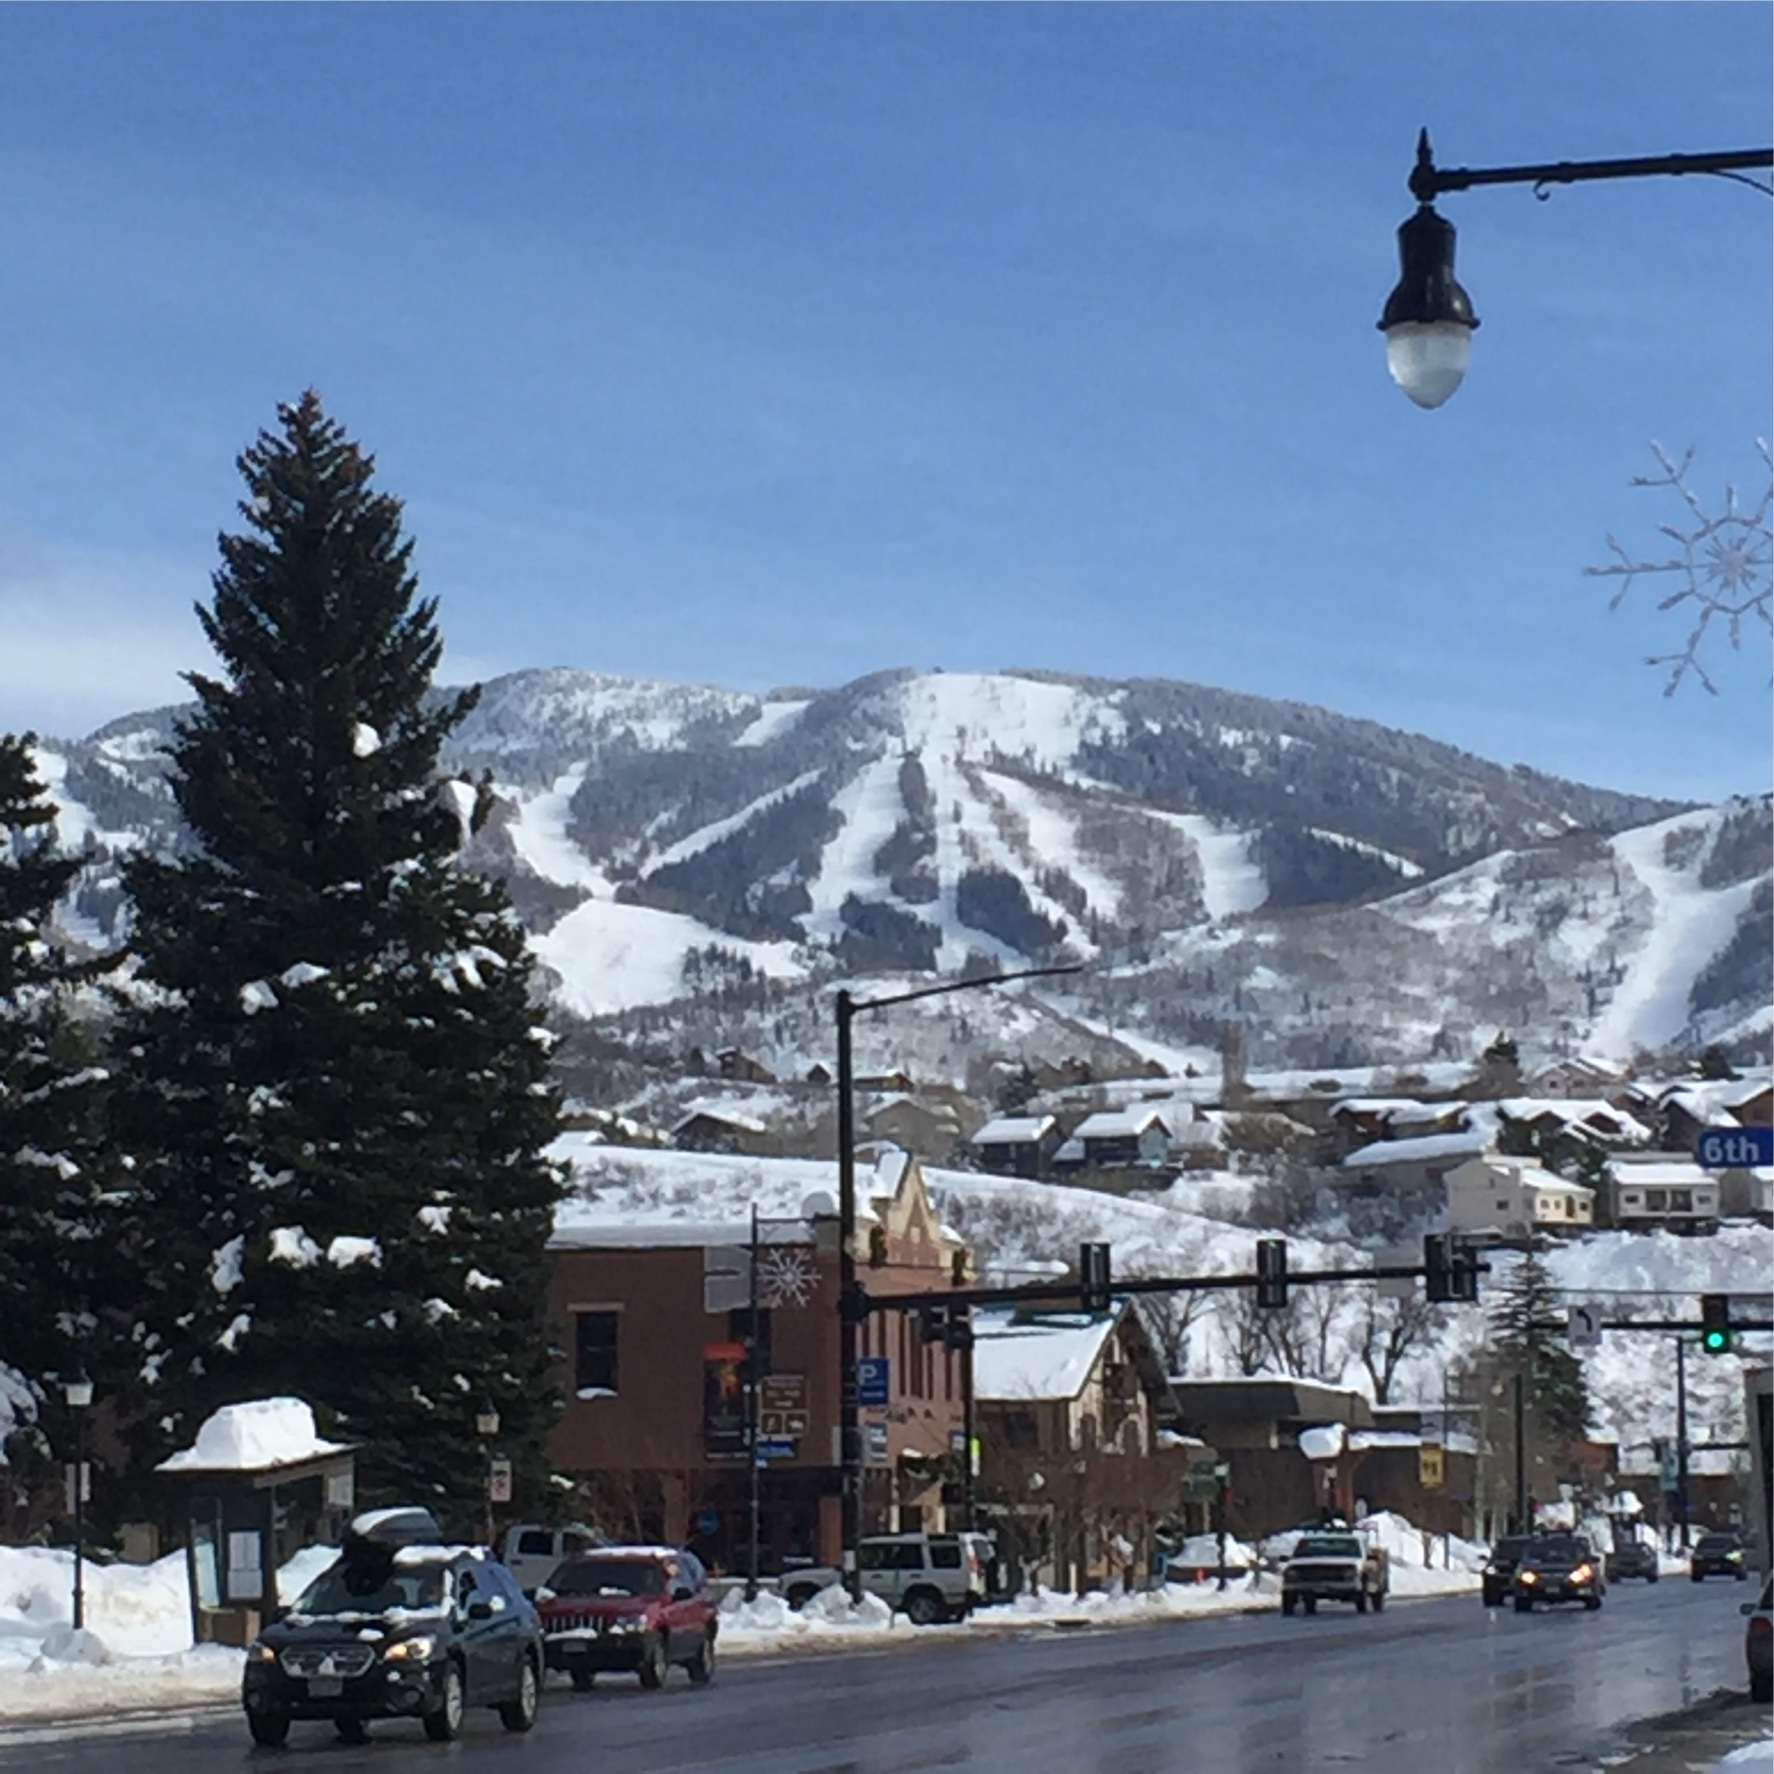 Steamboat Springs   is a charming Western town with boutique shopping. Spend a couple hours strolling up and down the main street.